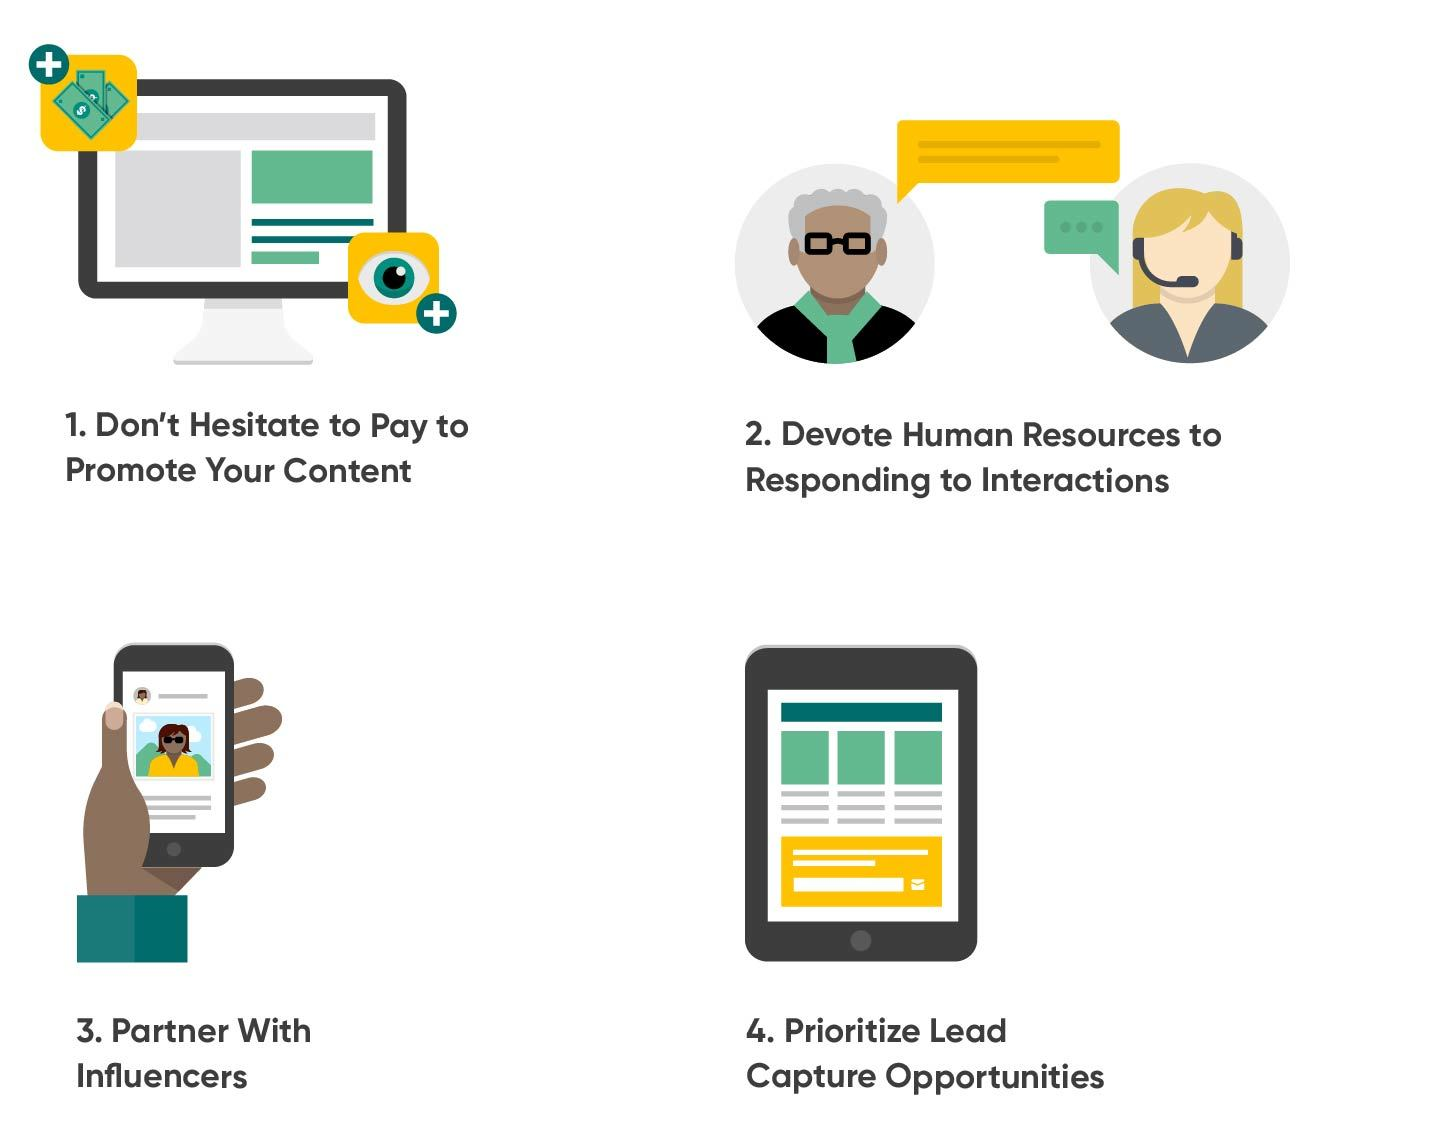 4-Tips-and-Trends-for-Banks-and-Credit-Unions-on-Social-Media.jpg#asset:21529